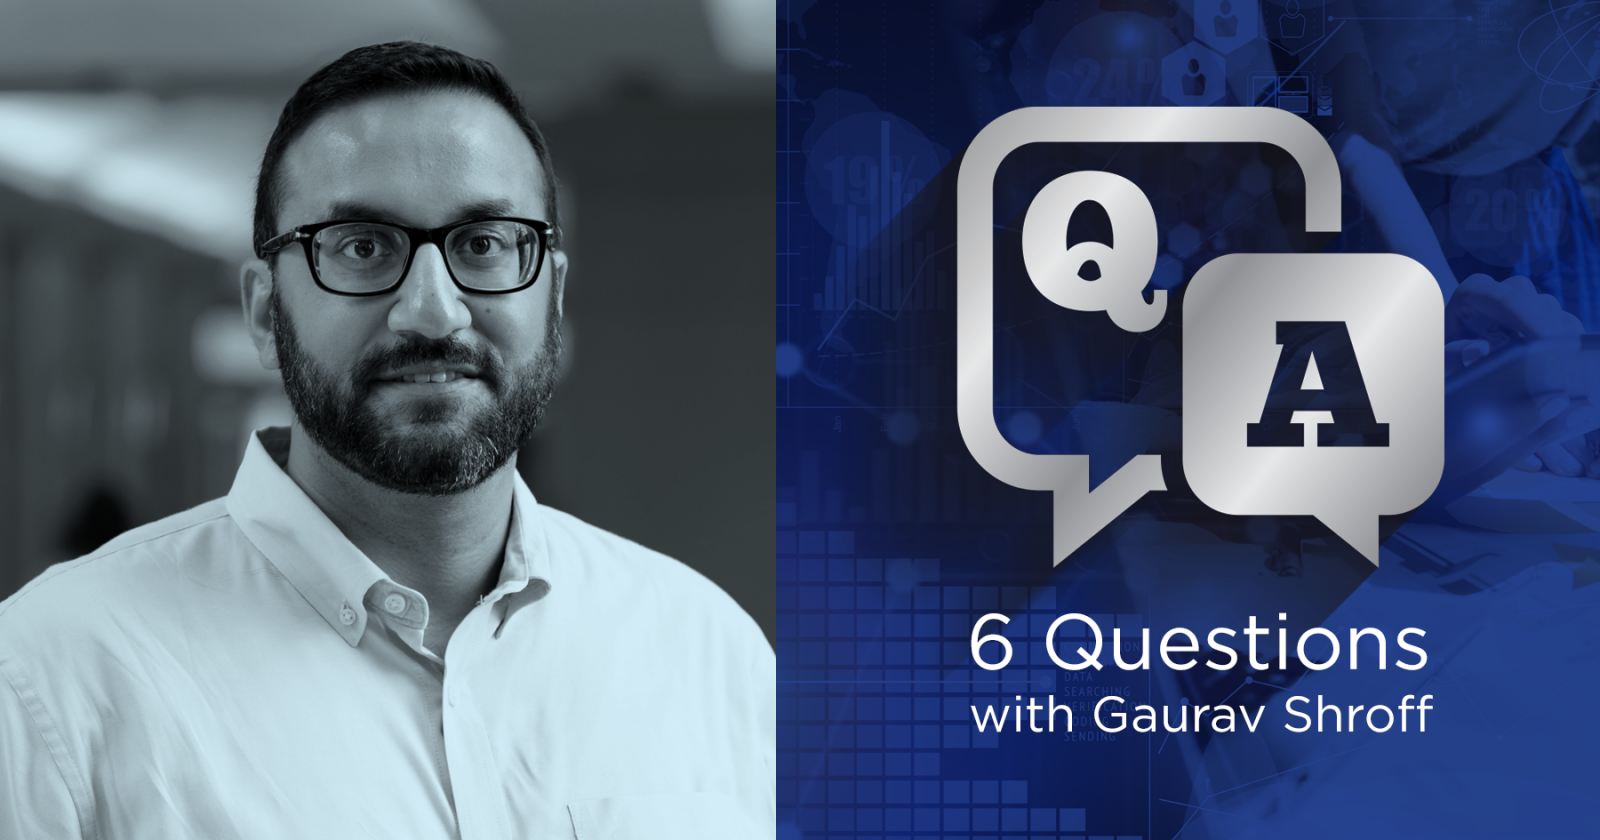 Q&A: 6 Questions With Gaurav Shroff